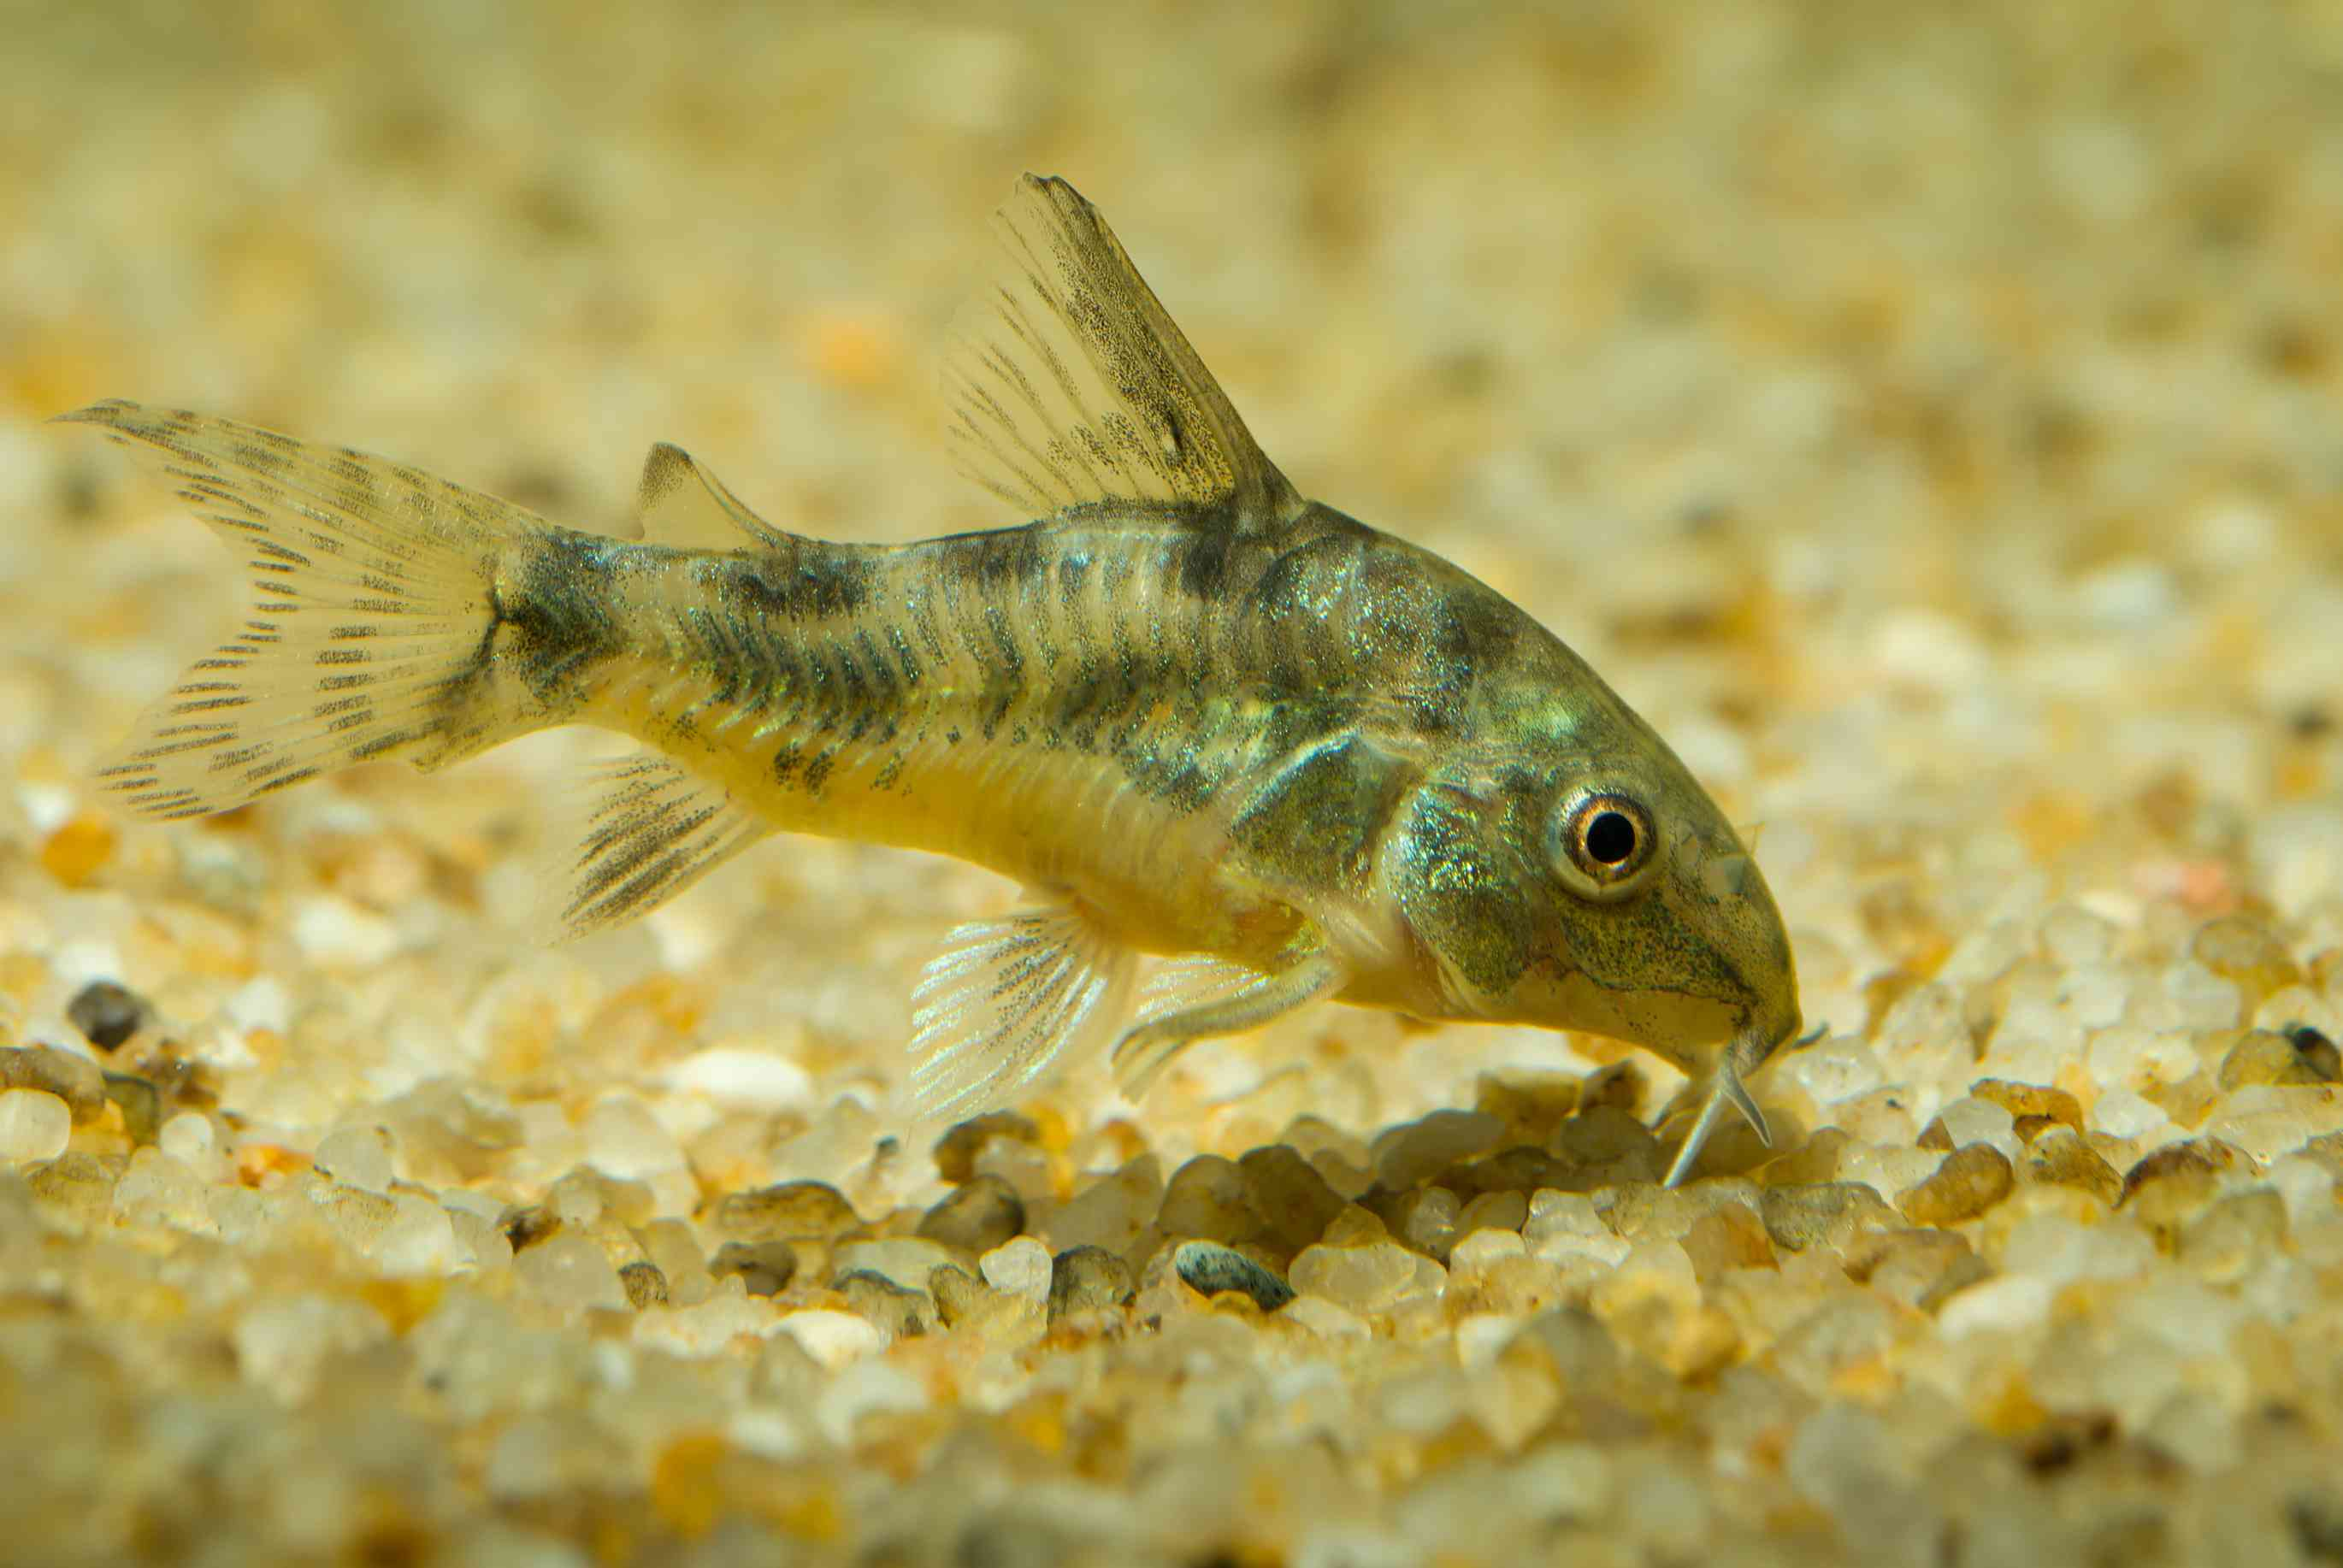 Pepper Cory using barbels to sense food in substrate